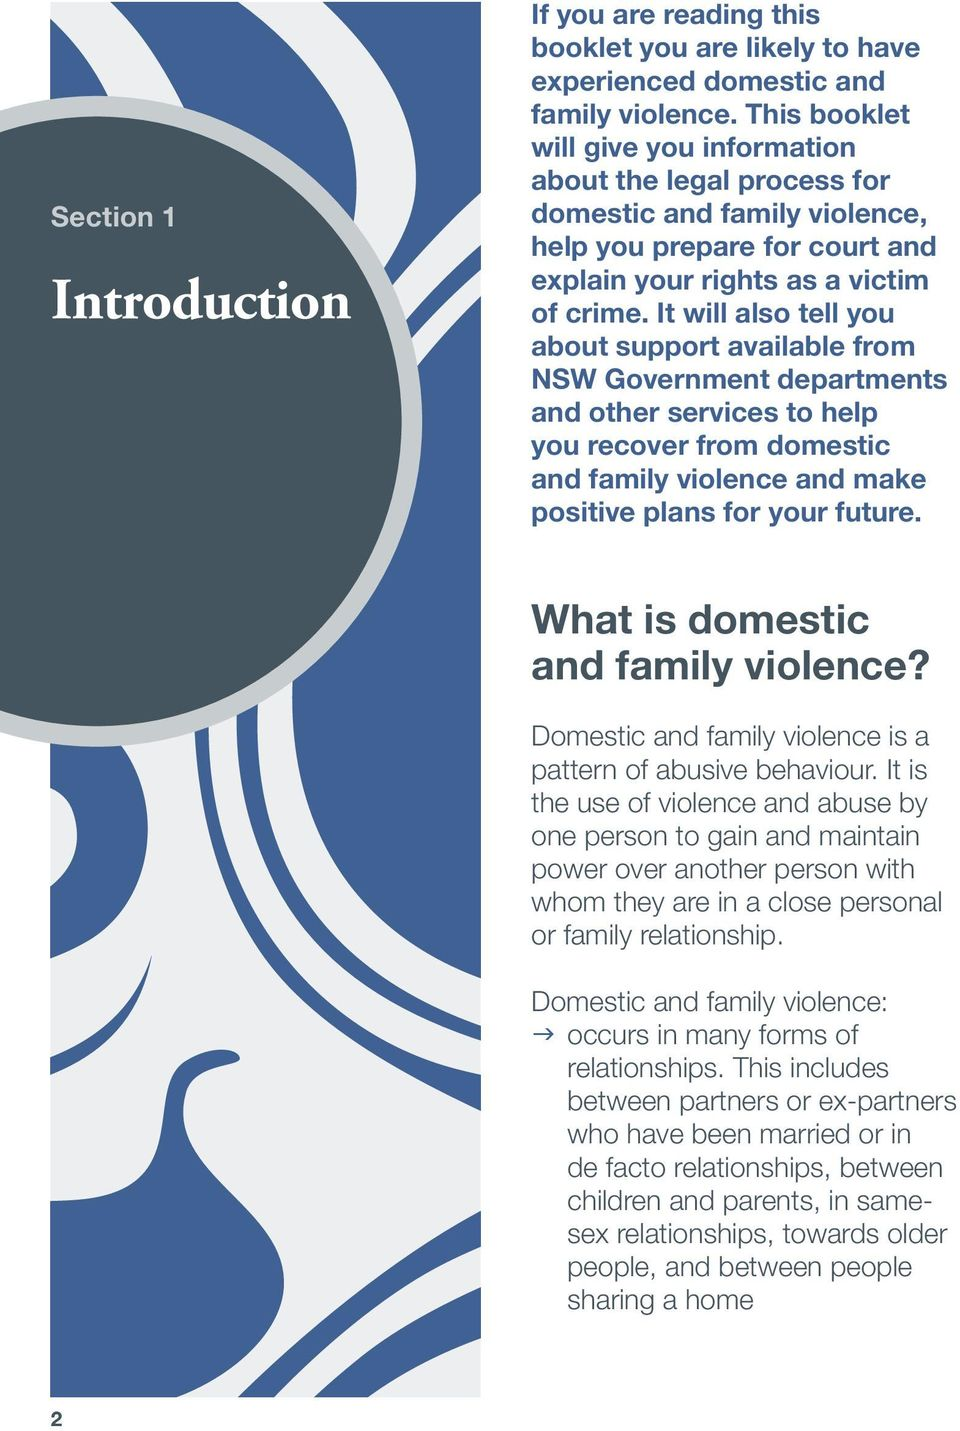 It will also tell you about support available from NSW Government departments and other services to help you recover from domestic and family violence and make positive plans for your future.